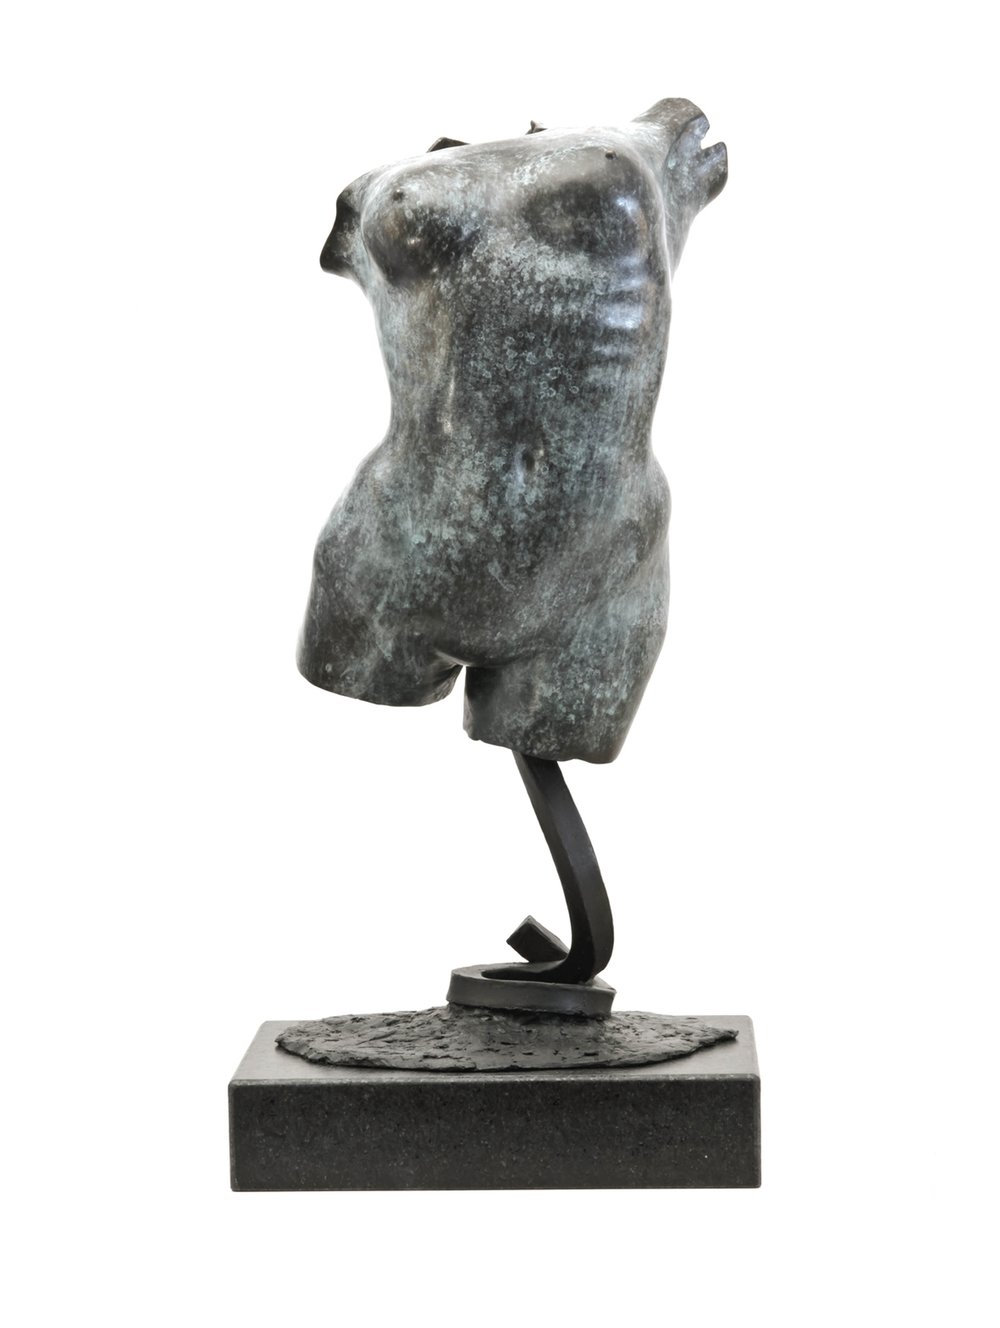 Persephone #2 , 2011, Bronze, Limited Edition of 5, 14 x 9 x 8 inches